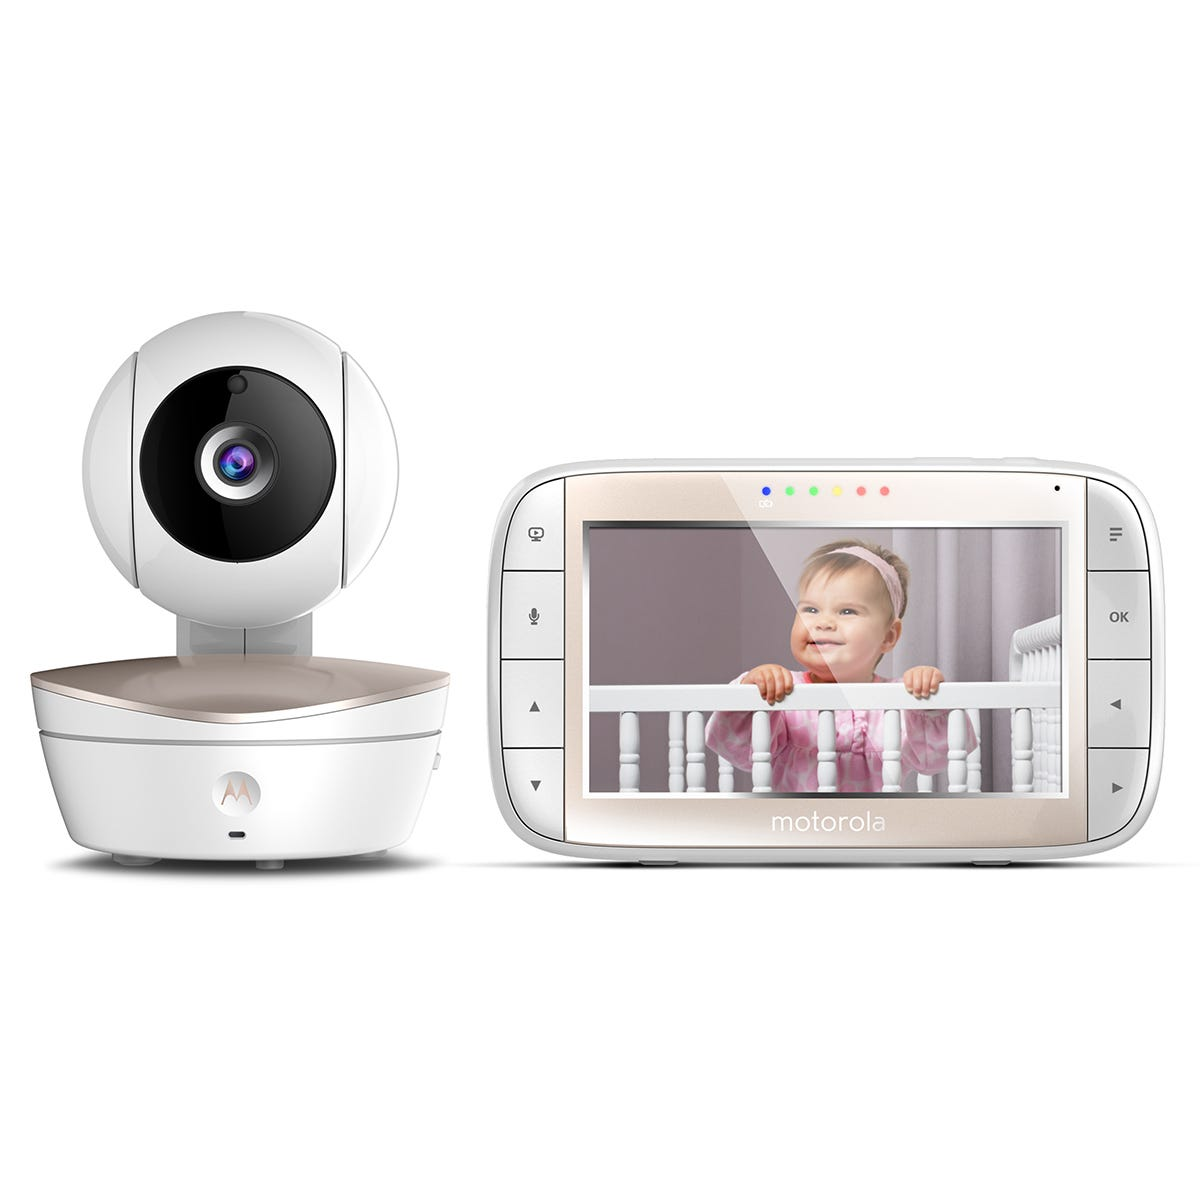 Motorola MBP49 Baby Monitor with 5 Inch Colour LCD Display Parent Unit, Room Temperature Monitoring, Infared Night Vision & Lullaby Player - White